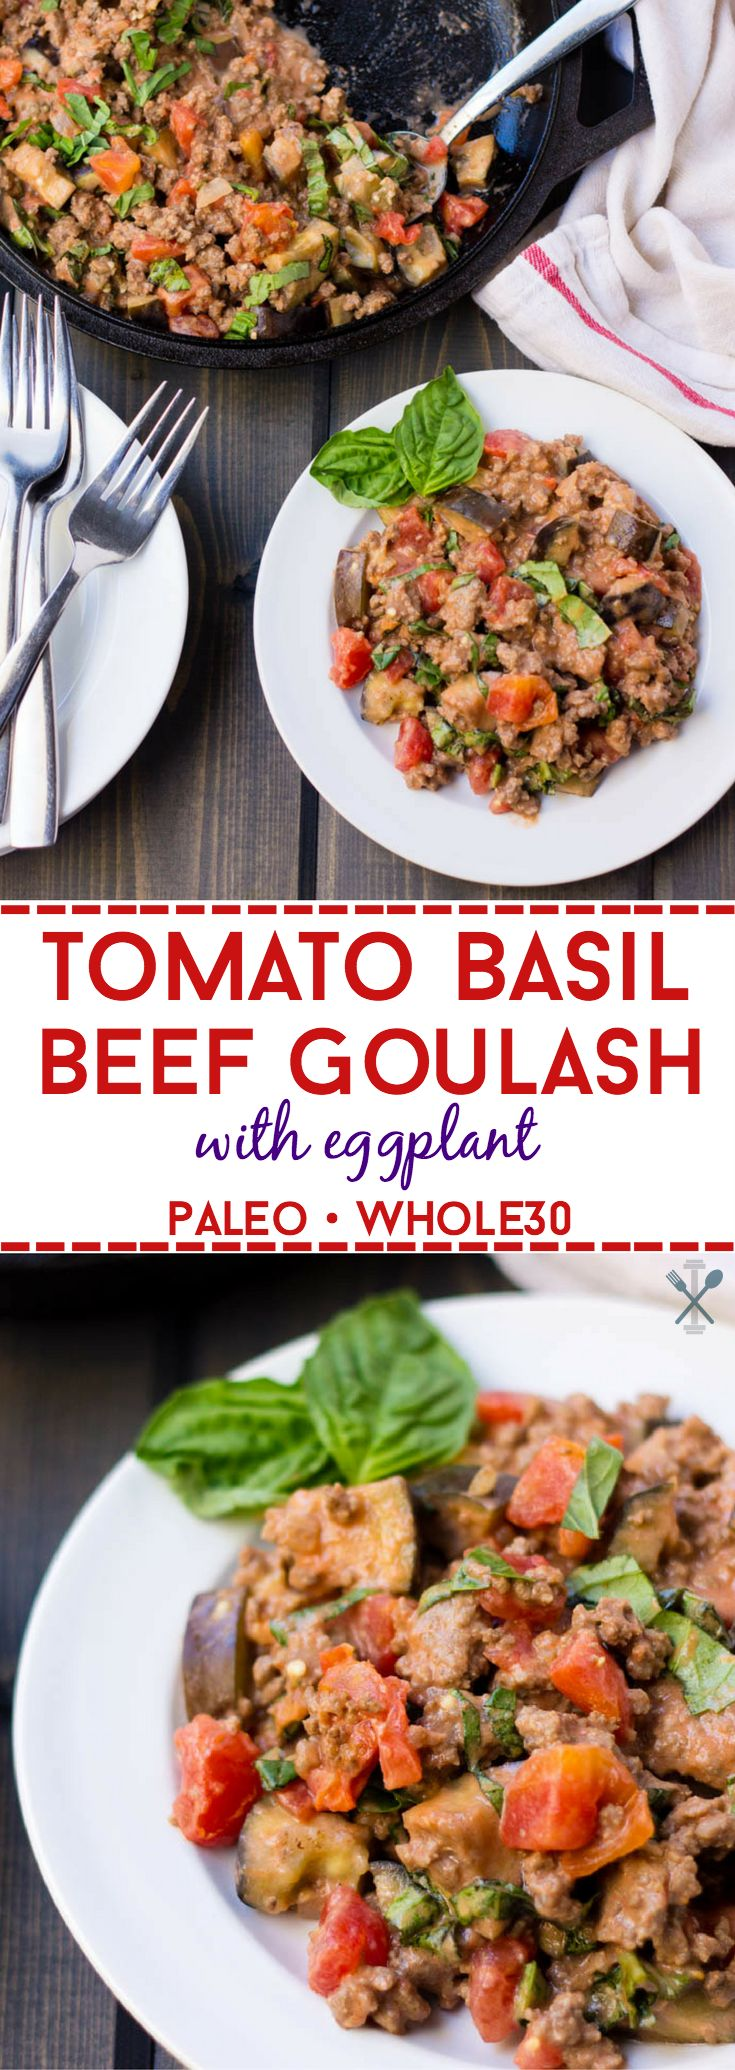 This whole30, paleo 30-minute meal is a delicious family dinner everyone will LOVE! Makes great leftovers too!